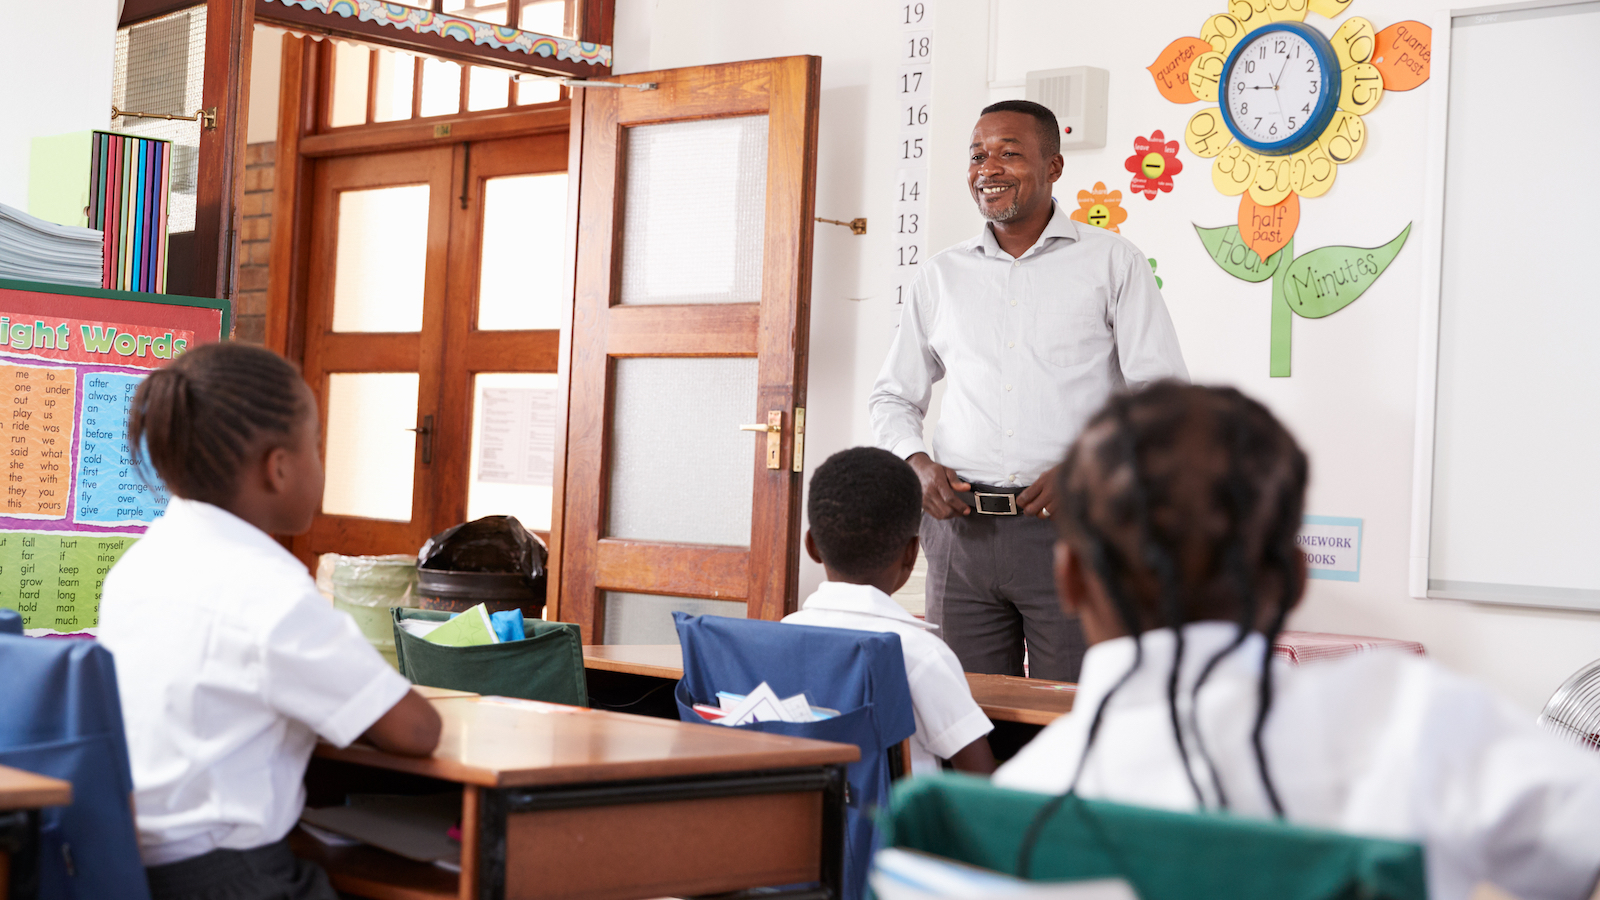 Classroom Management 101: Setting Classroom Expectations for Students